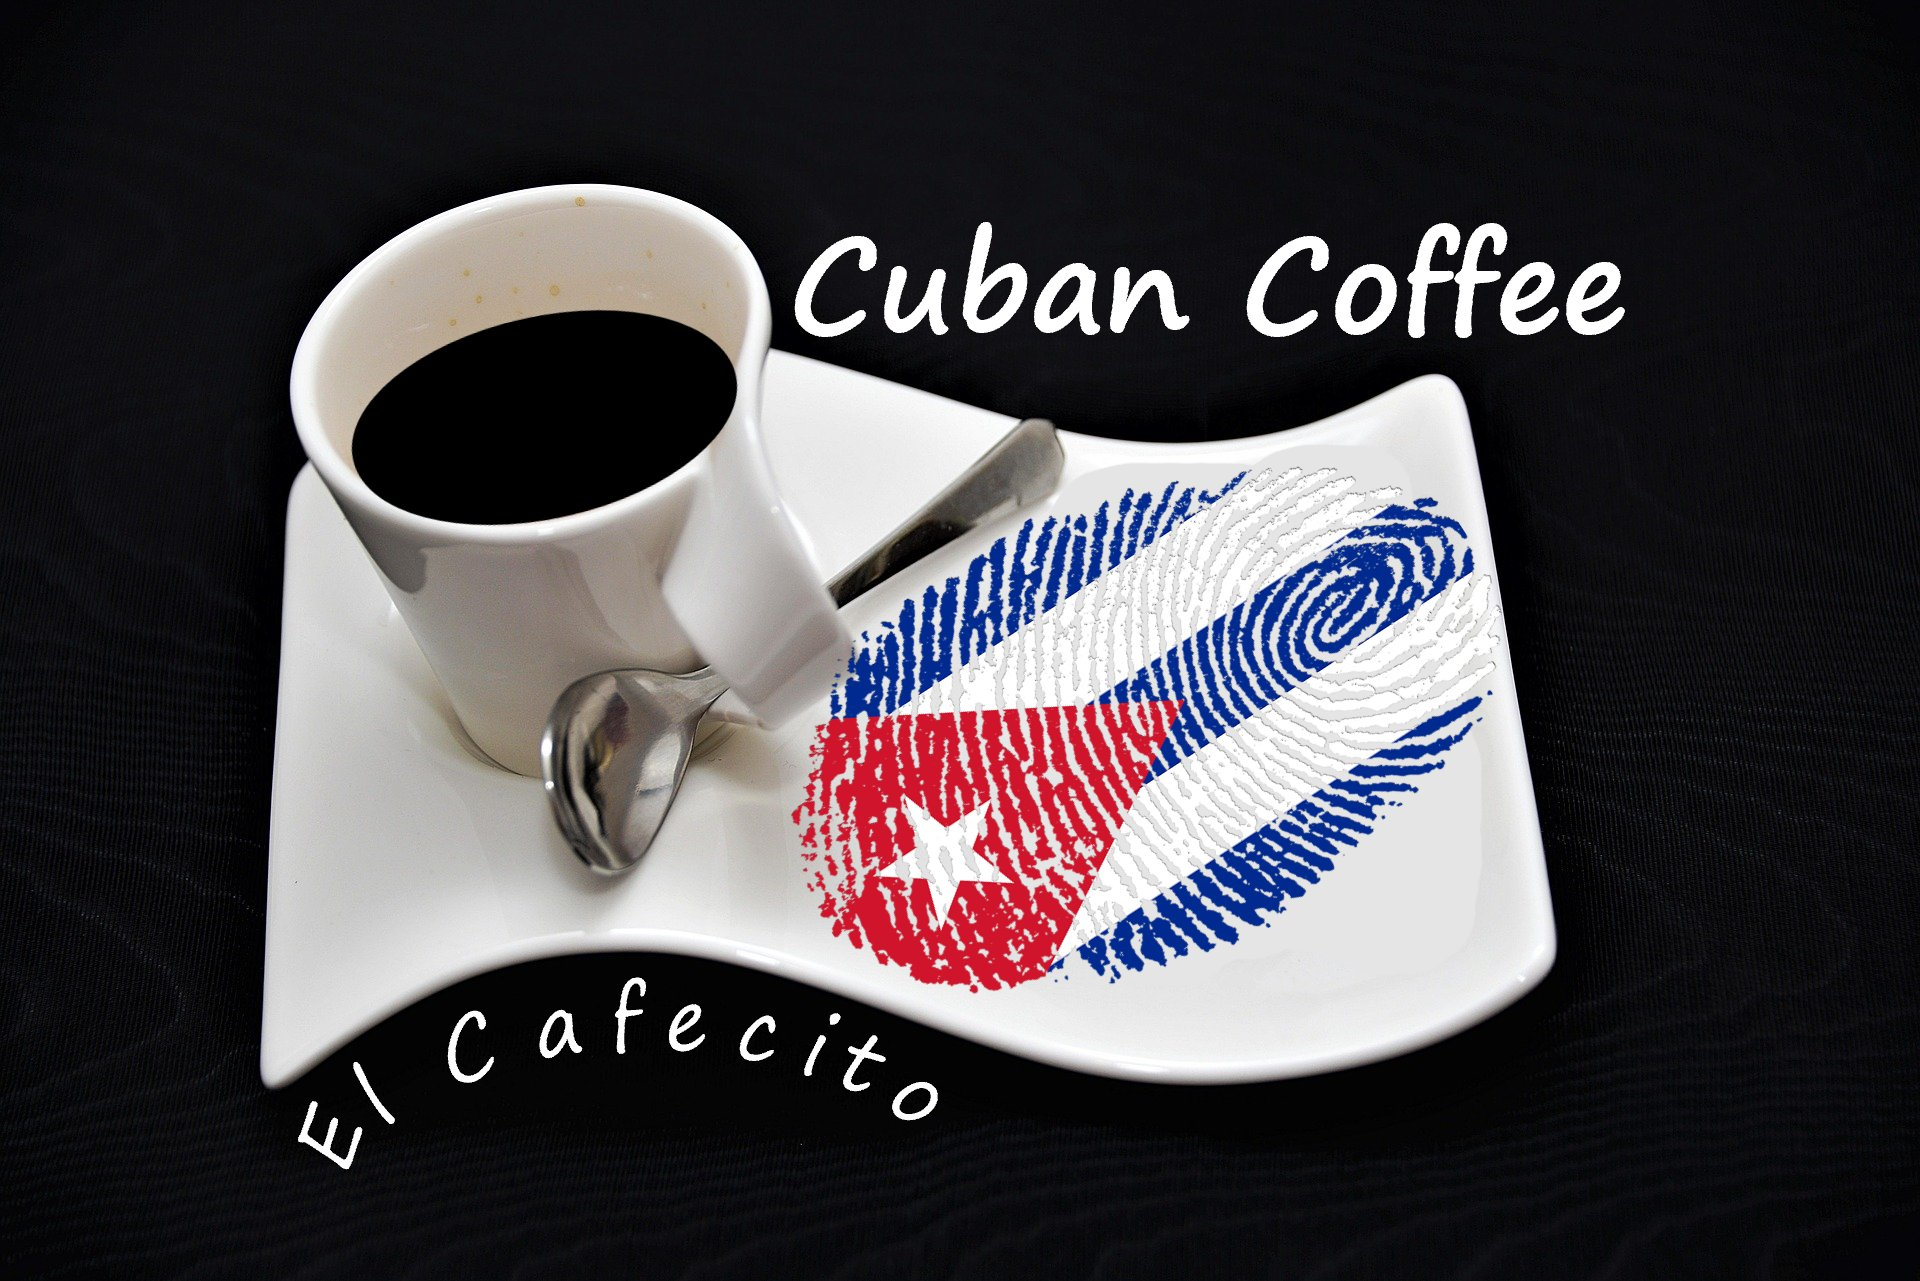 Cuban Coffee Calories - Cafe Cubano -El Cafecito